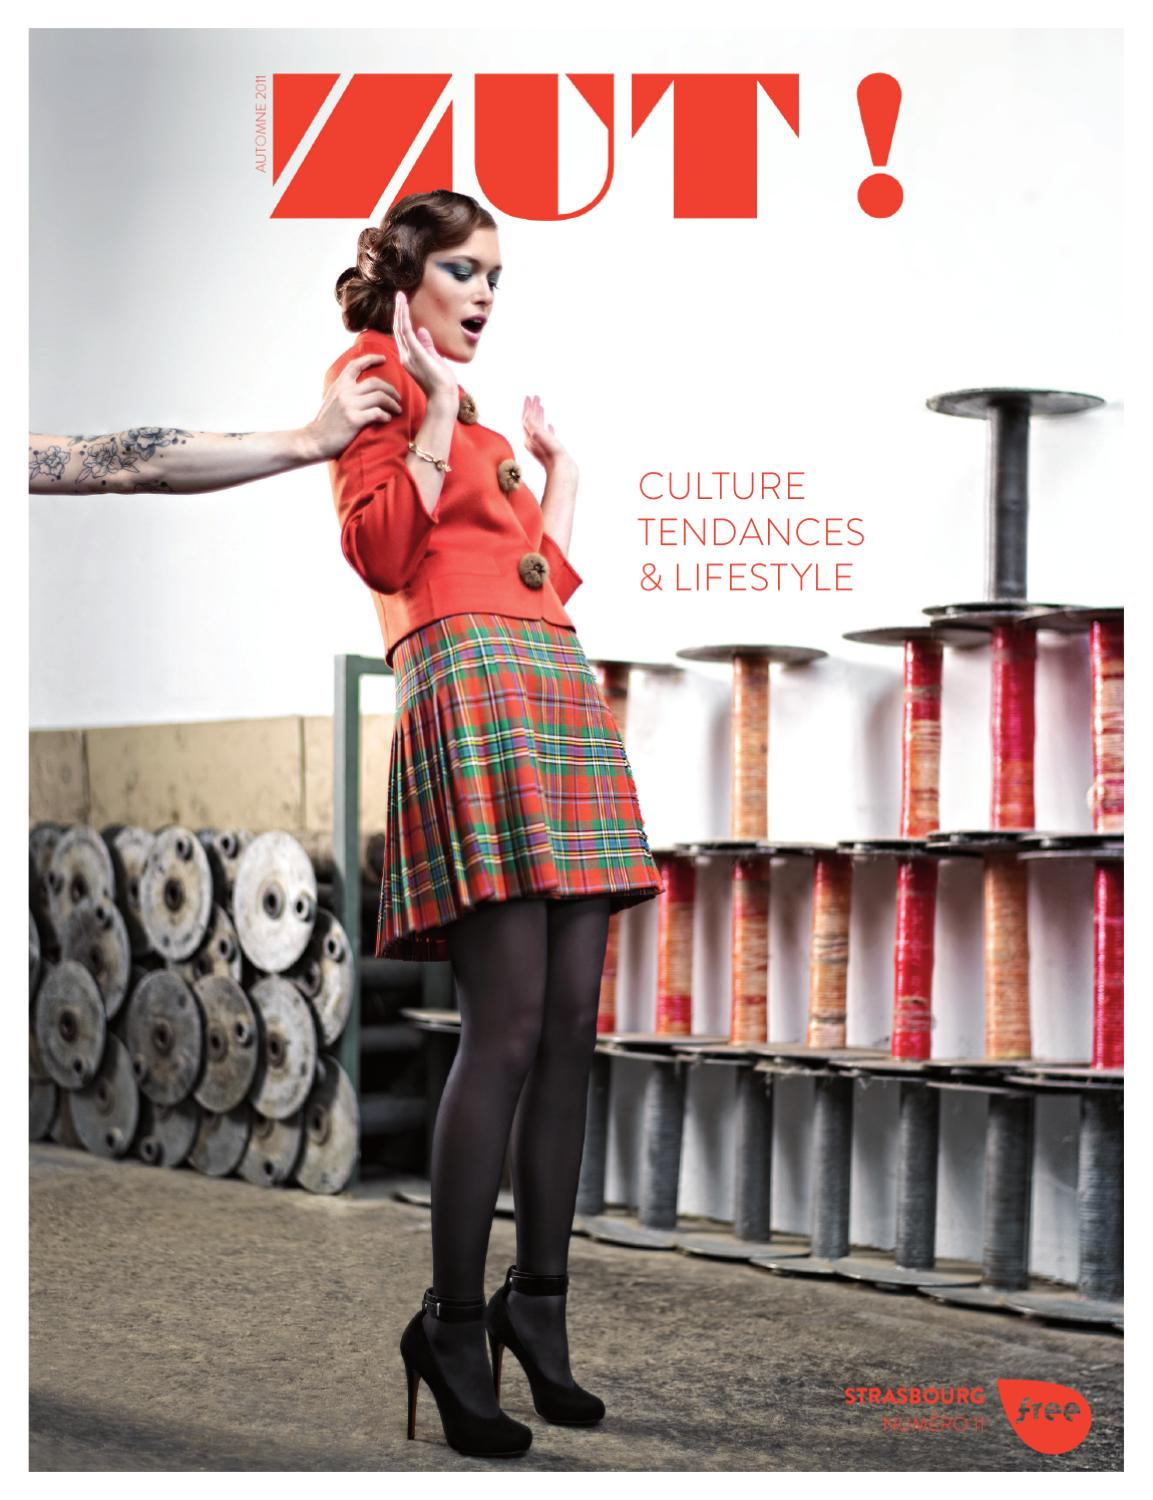 Magazine Zut Magazine By Issuu By Zut 11 By Magazine Zut Issuu 11 11 By Issuu 11 Zut qwf81CC